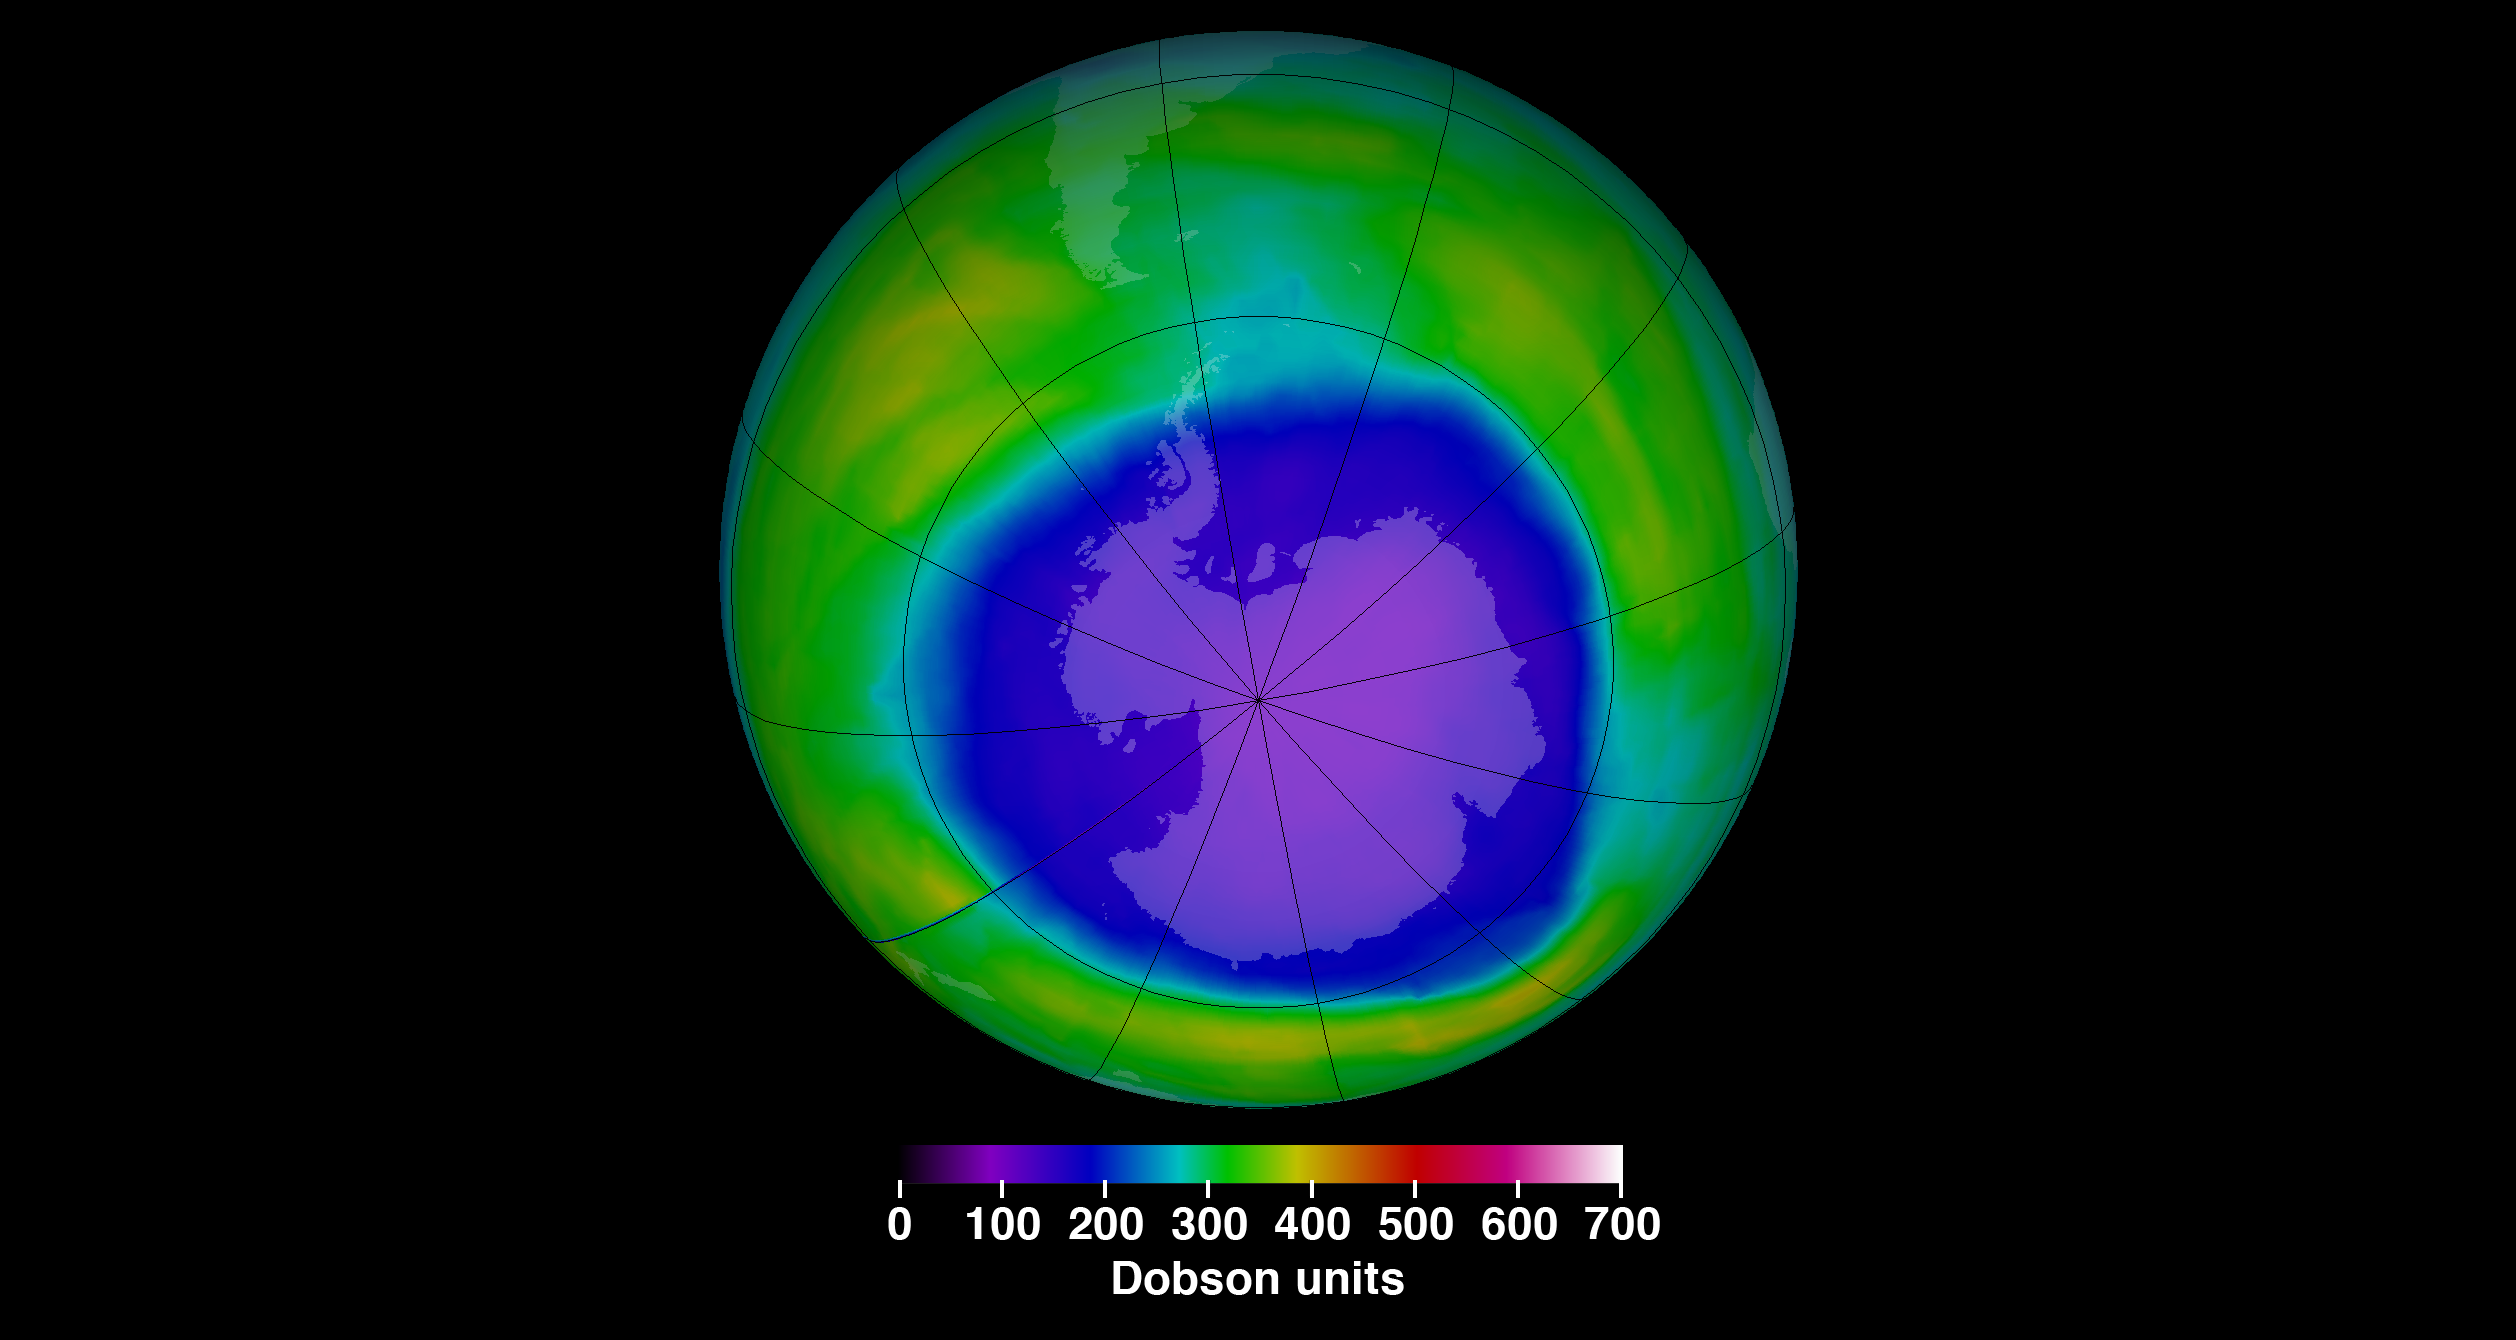 Ozone layer depletion drastically reduced due to rare event, NASA confirms